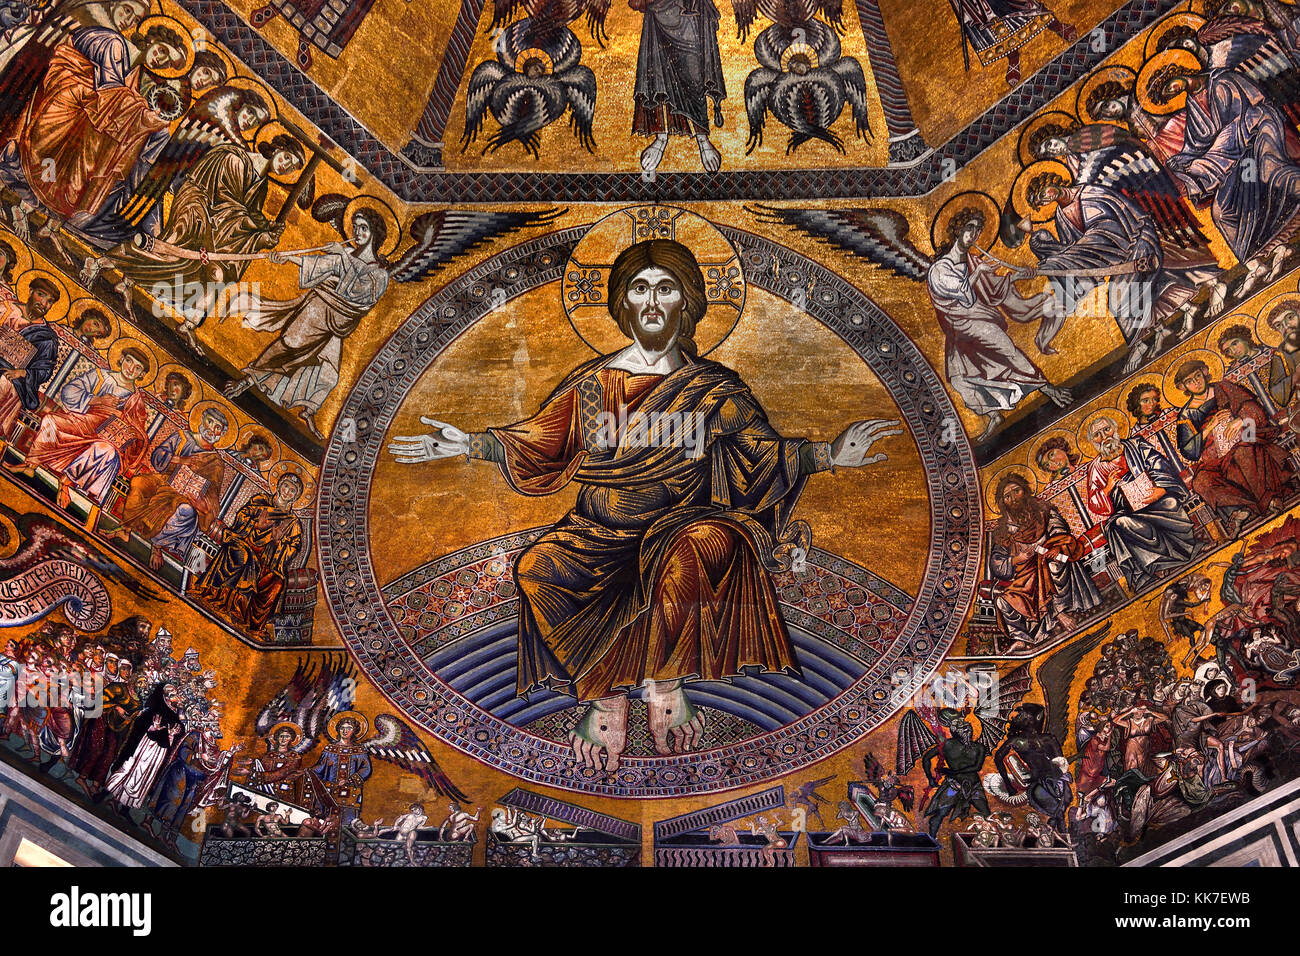 Christ and the Last Judgement in the Mosaic-covered interior of the octagonal dome The Florence Baptistery (: Battistero - Stock Image